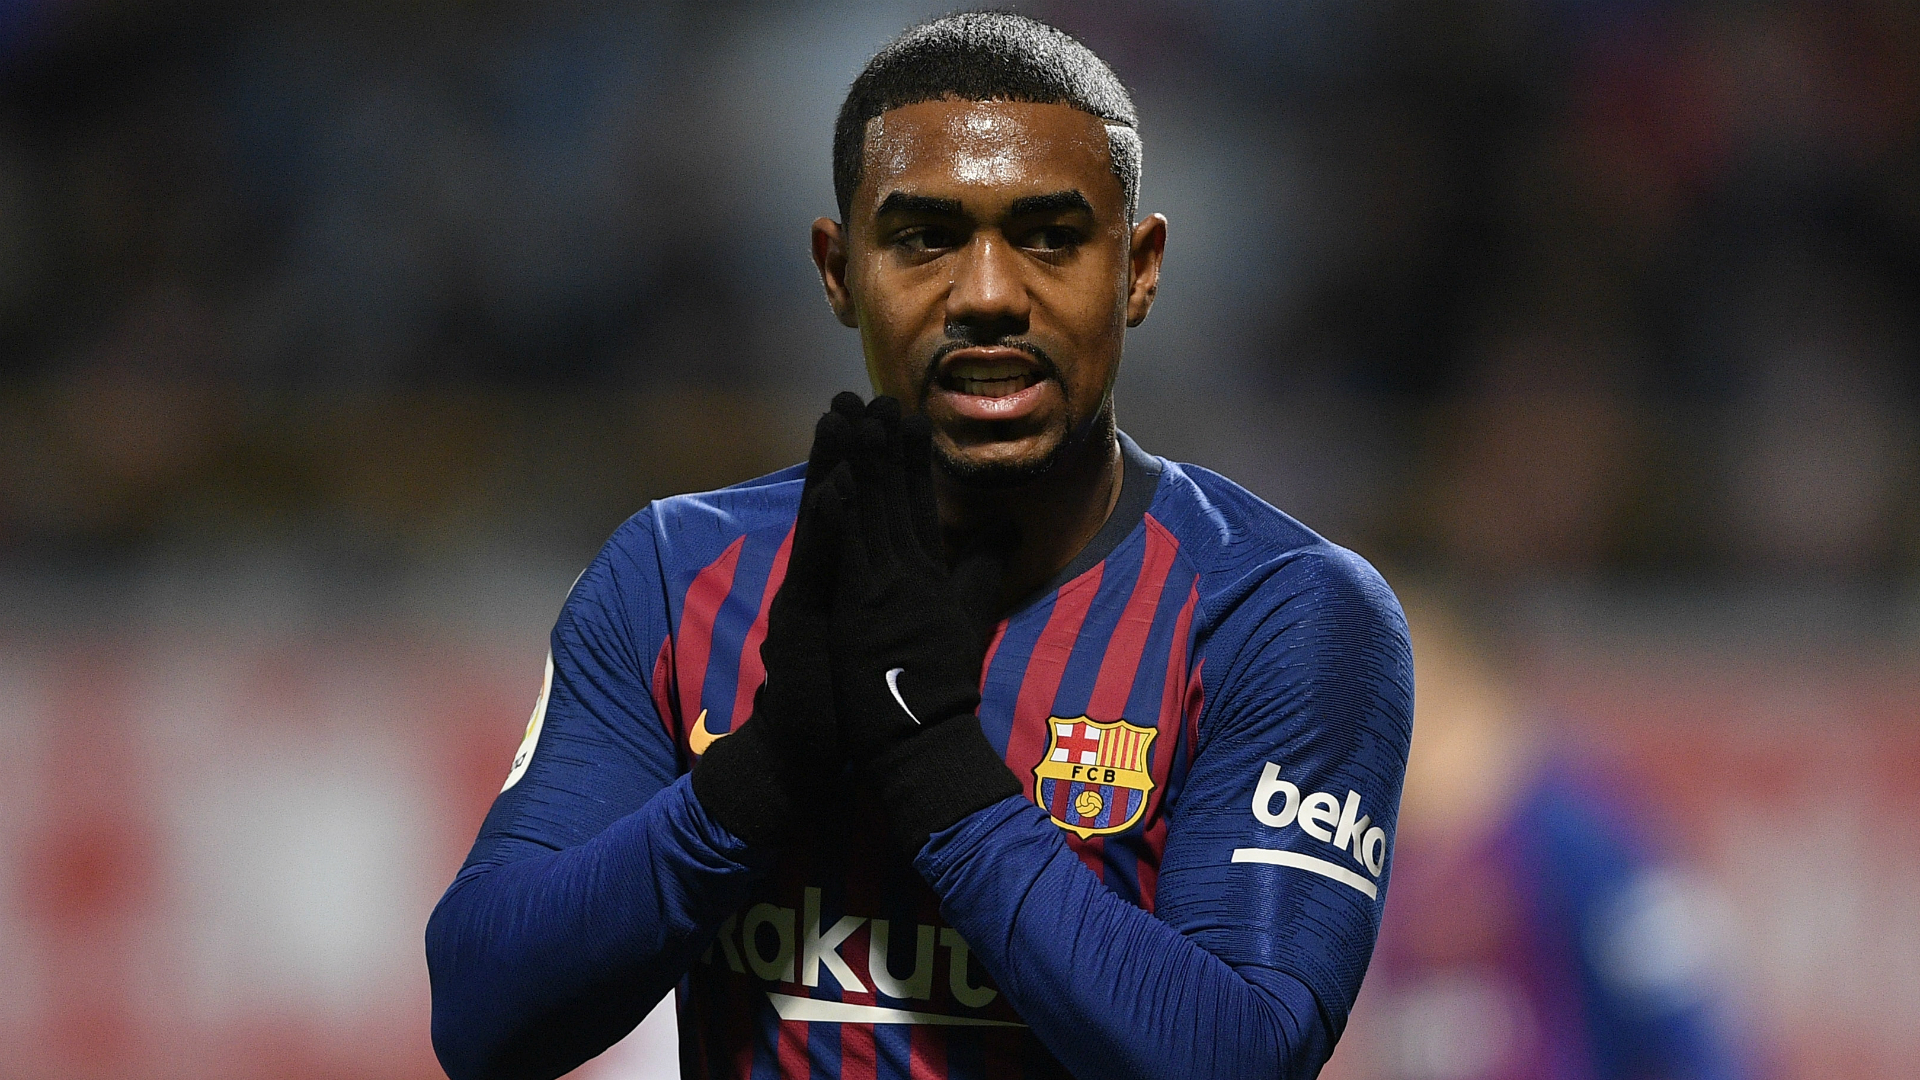 Malcom denies Barcelona exit reports